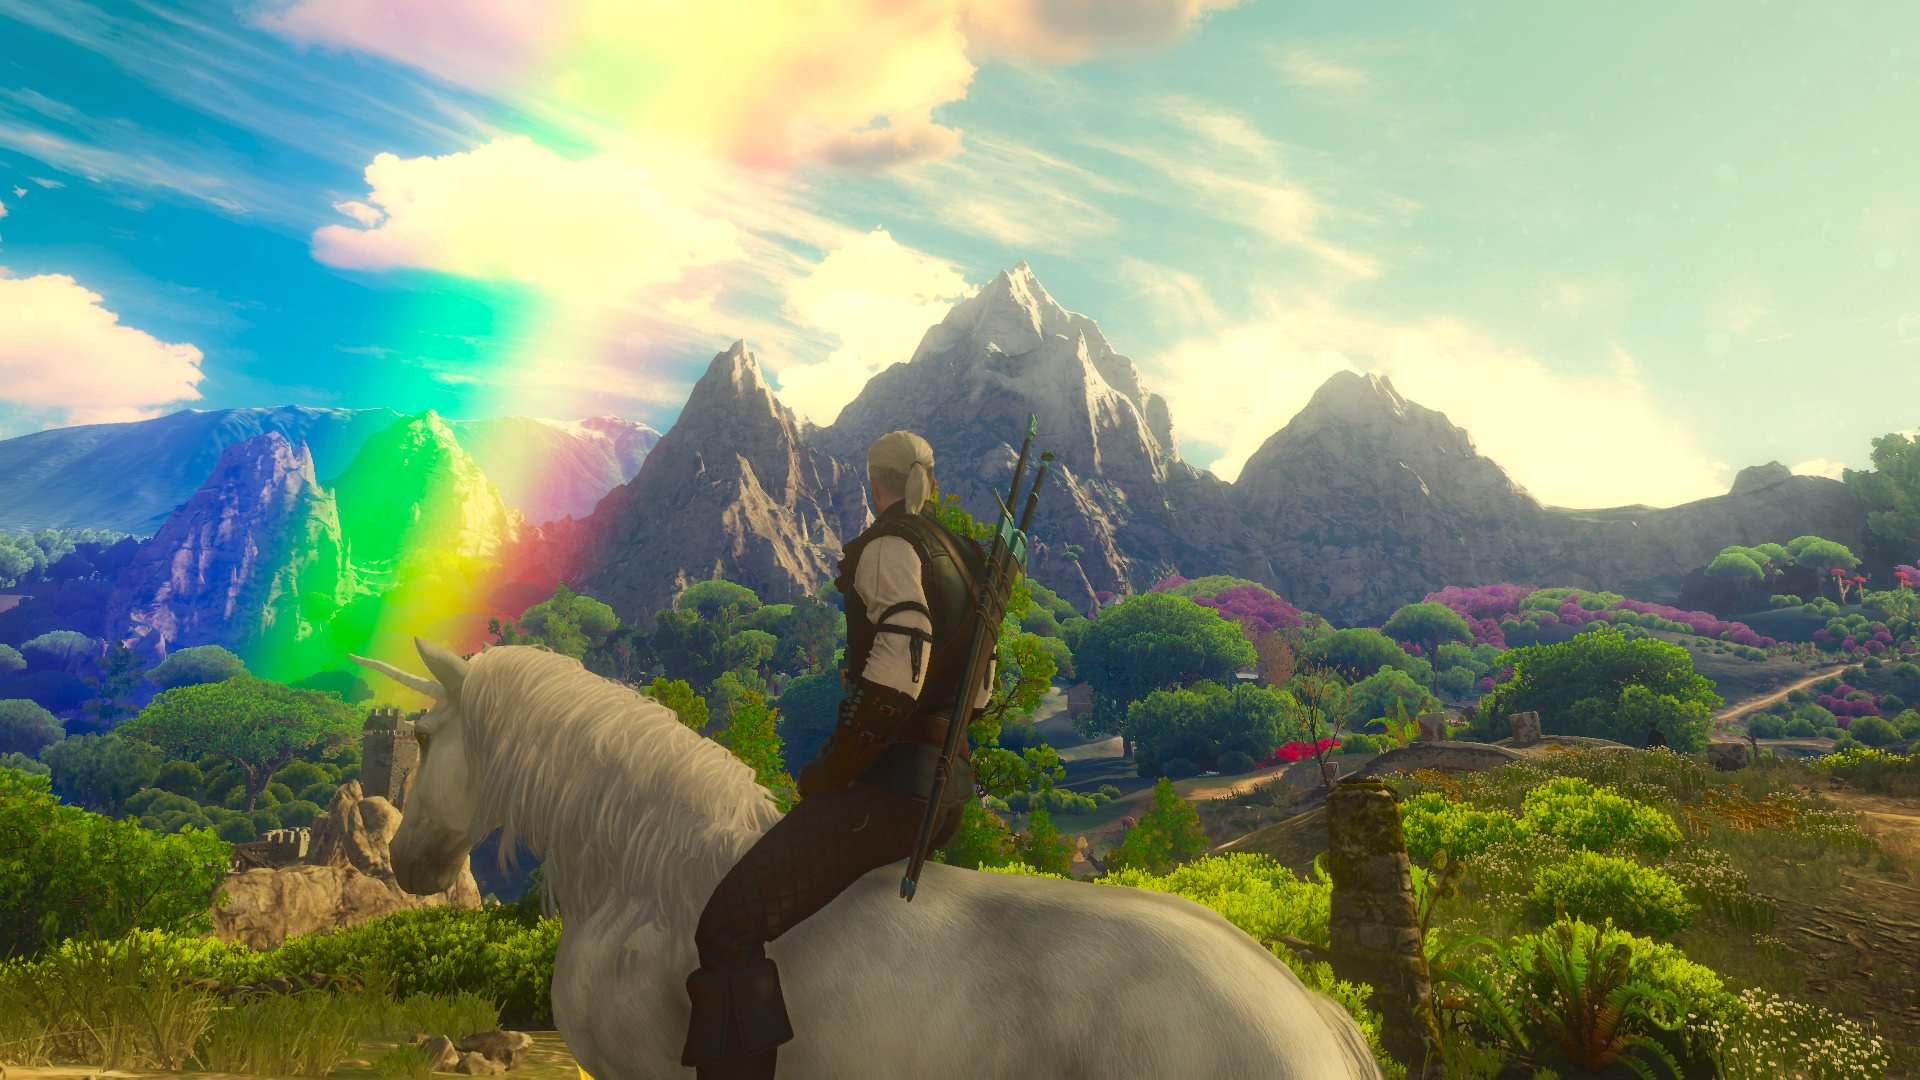 A man, Geralt, with long white hair pulled back, sits on a unicorn. A rainbow crosses the sky with mountains in the background. From The Witcher 3 video game.